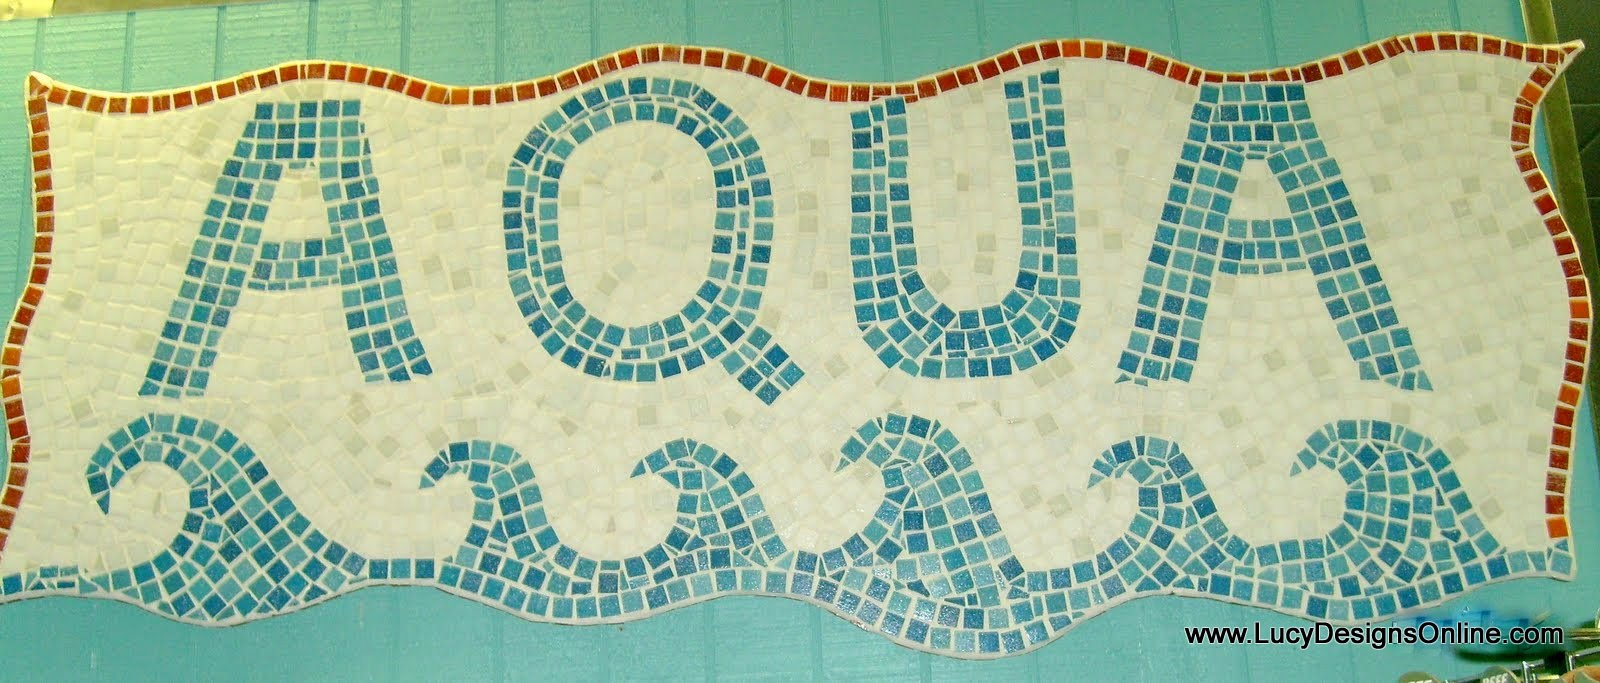 ceramic tile mosaic sign with waves